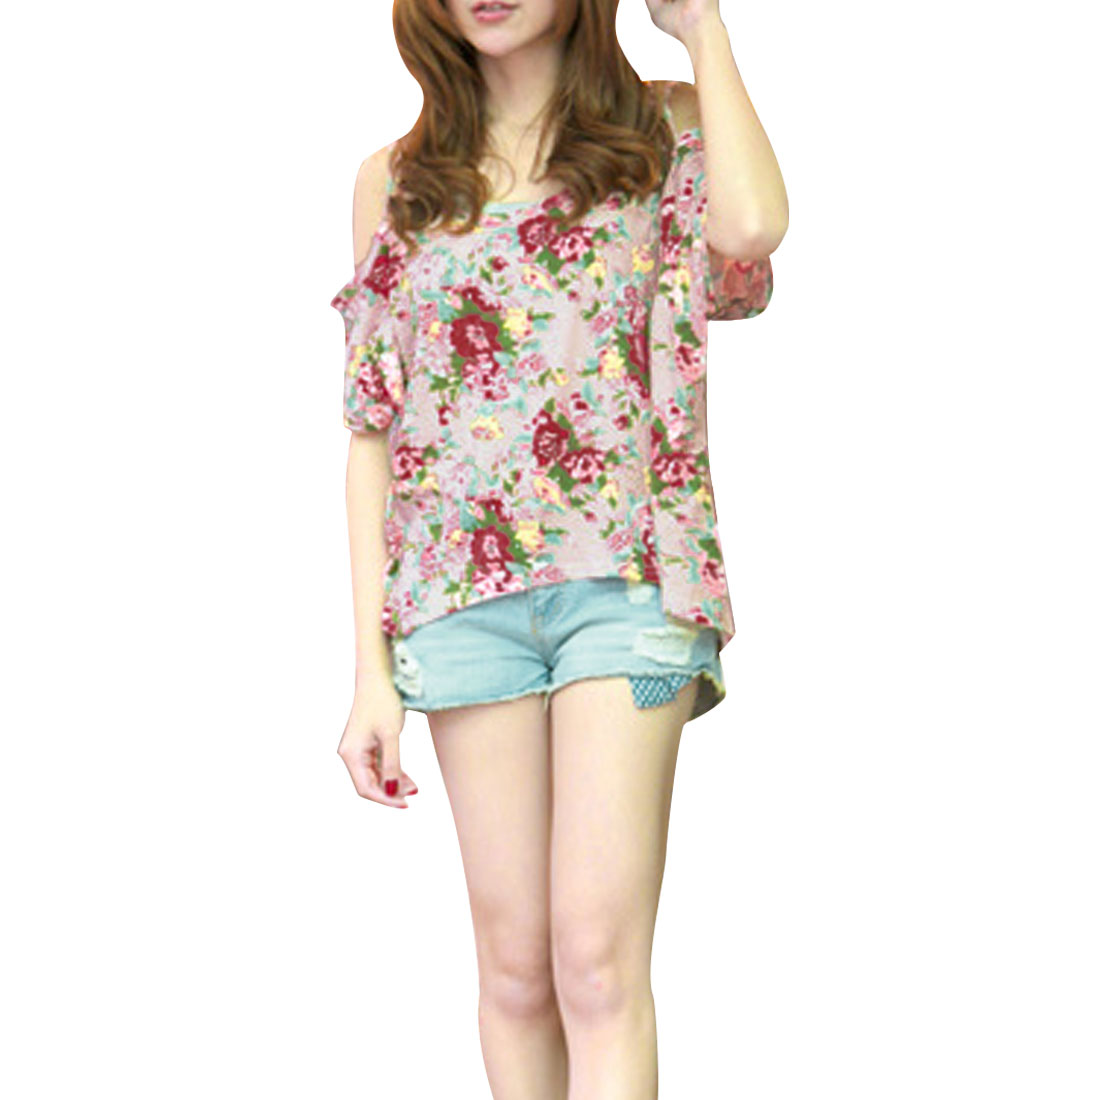 Women Floral Prints Short Sleeve Loose Tops w Stretchy Tank Top Pink XS